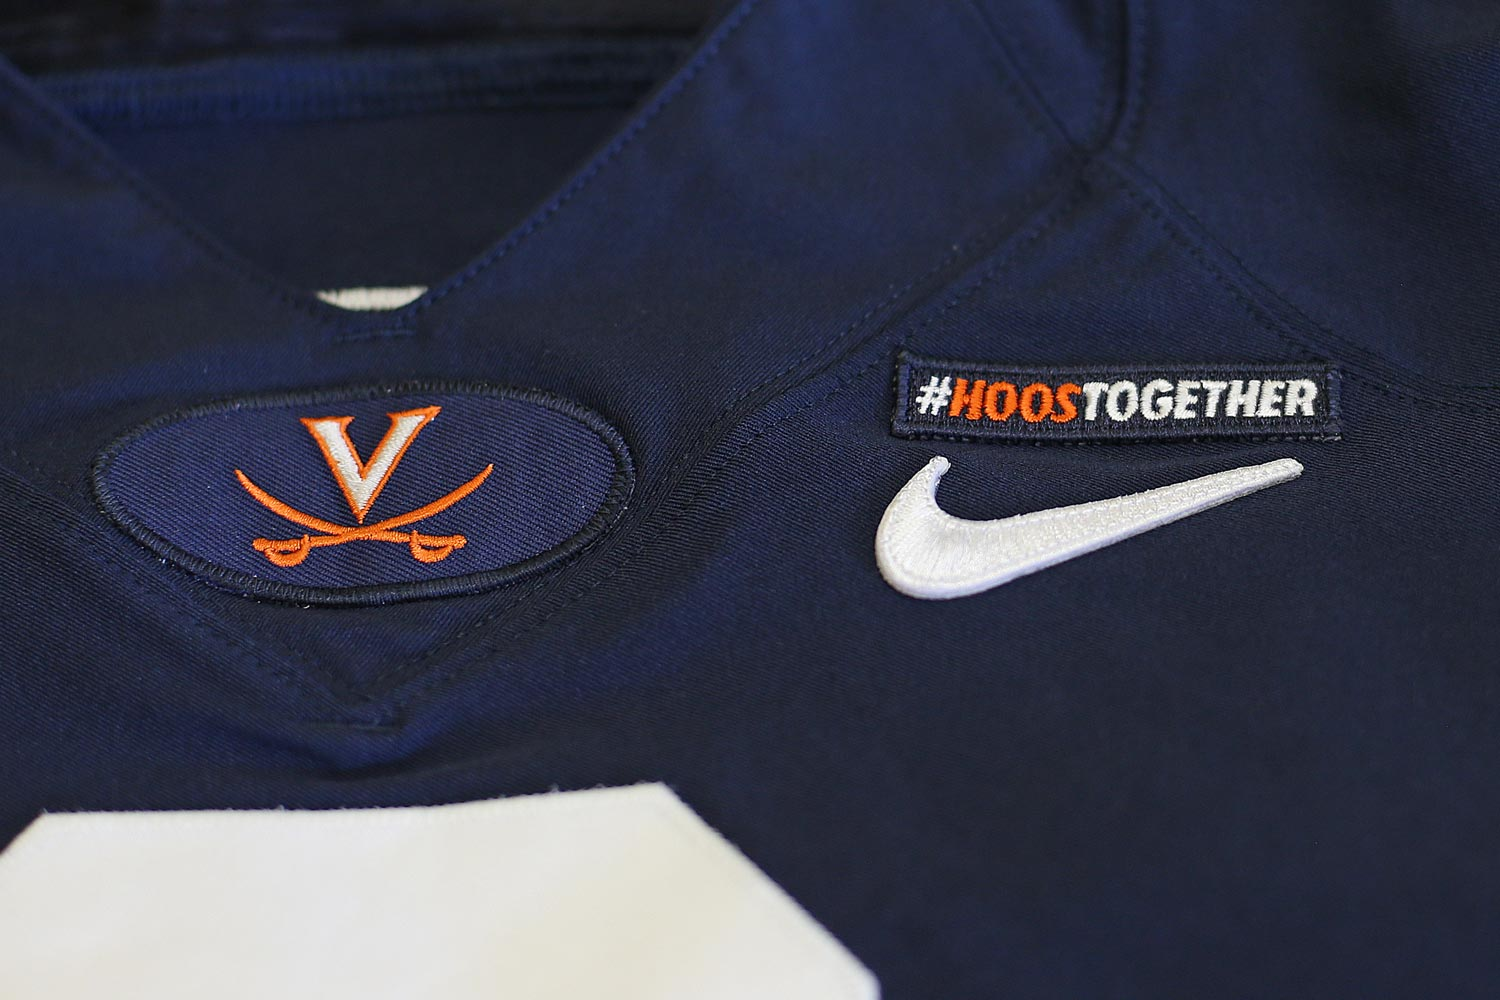 """Virginia athletics is committed to #HoosTogether and its message. We rely on it every day for our student-athletes, coaches and staff to be successful,"" said UVA Director of Athleics Craig Littlepage."